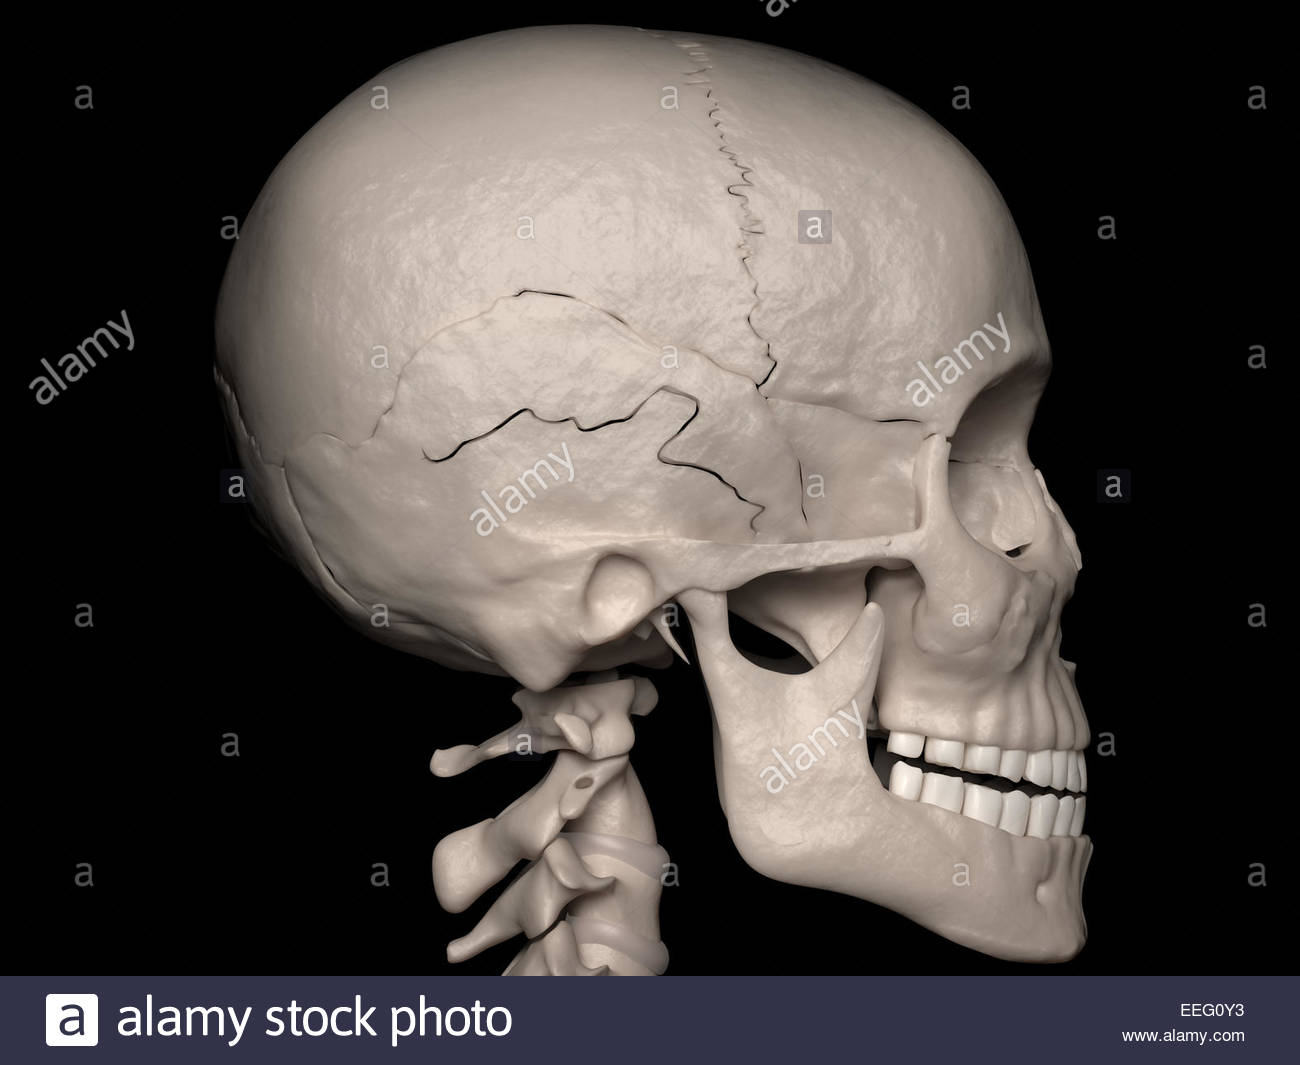 Digital medical illustration depicting a linear cranial vault fracture of the temporal bone (skull fracture). Lateral - Stock Image